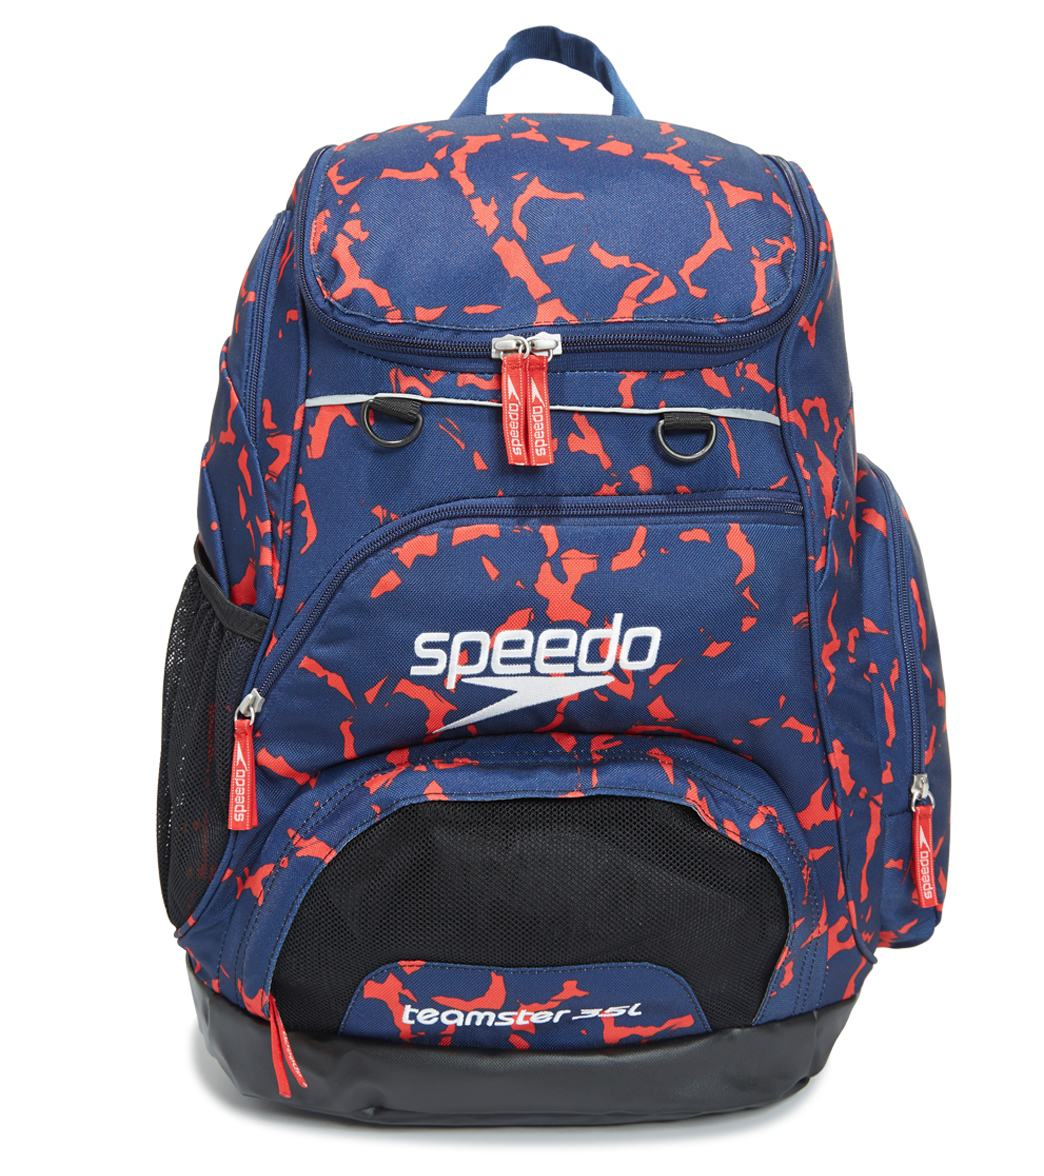 Speedo Printed Teamster 35L Swimming Bag Backpack